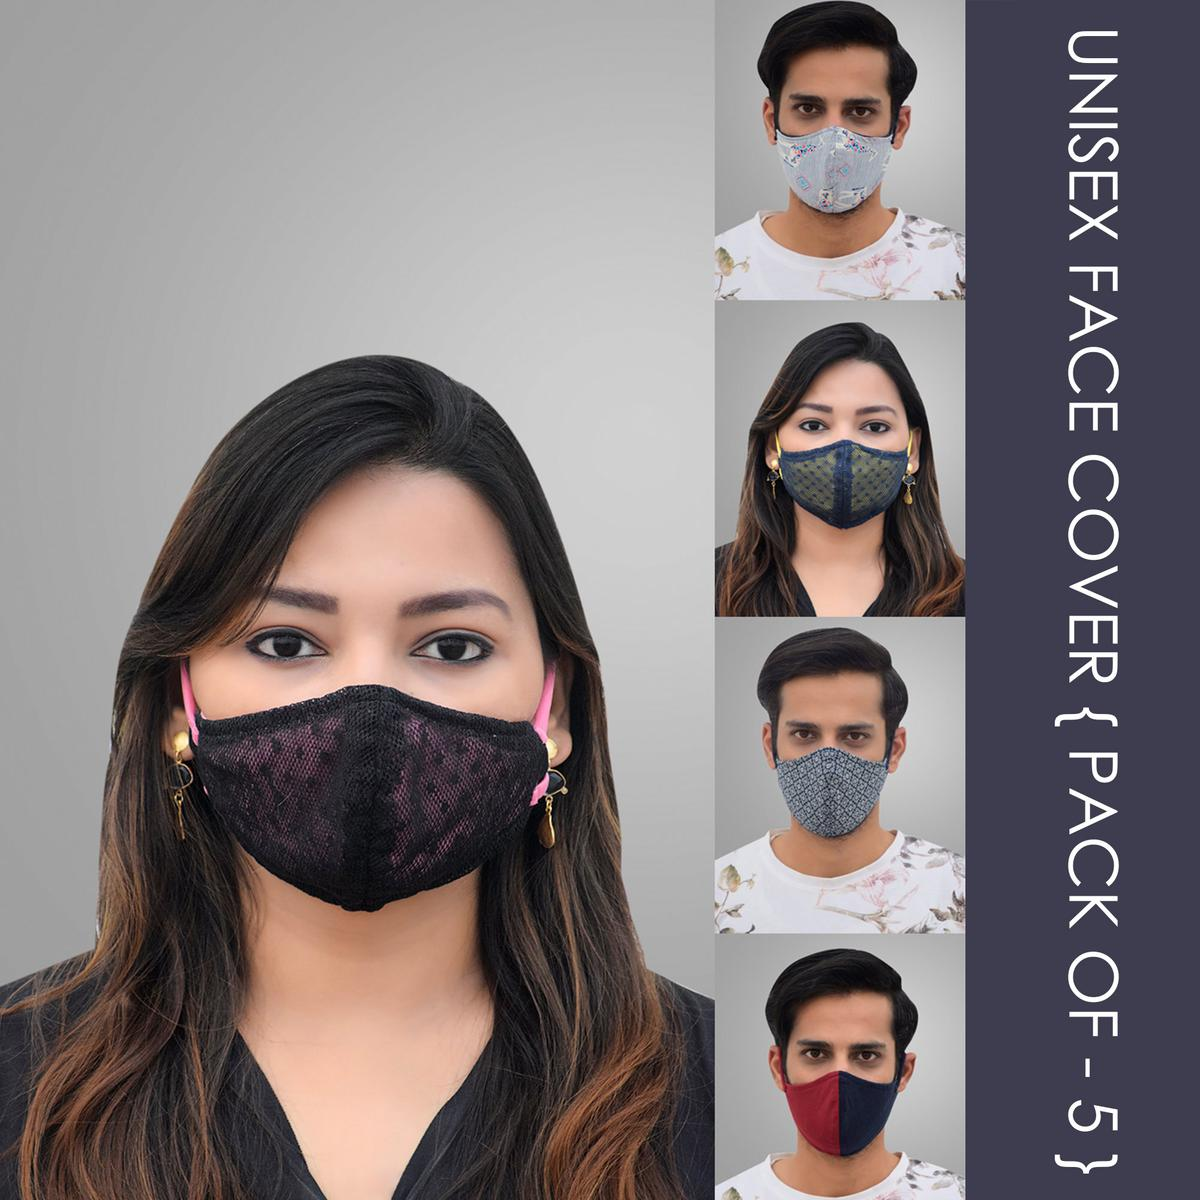 Pannkh Unisex 5 Pcs 2-Ply Printed Reusable Outdoor Face Cover